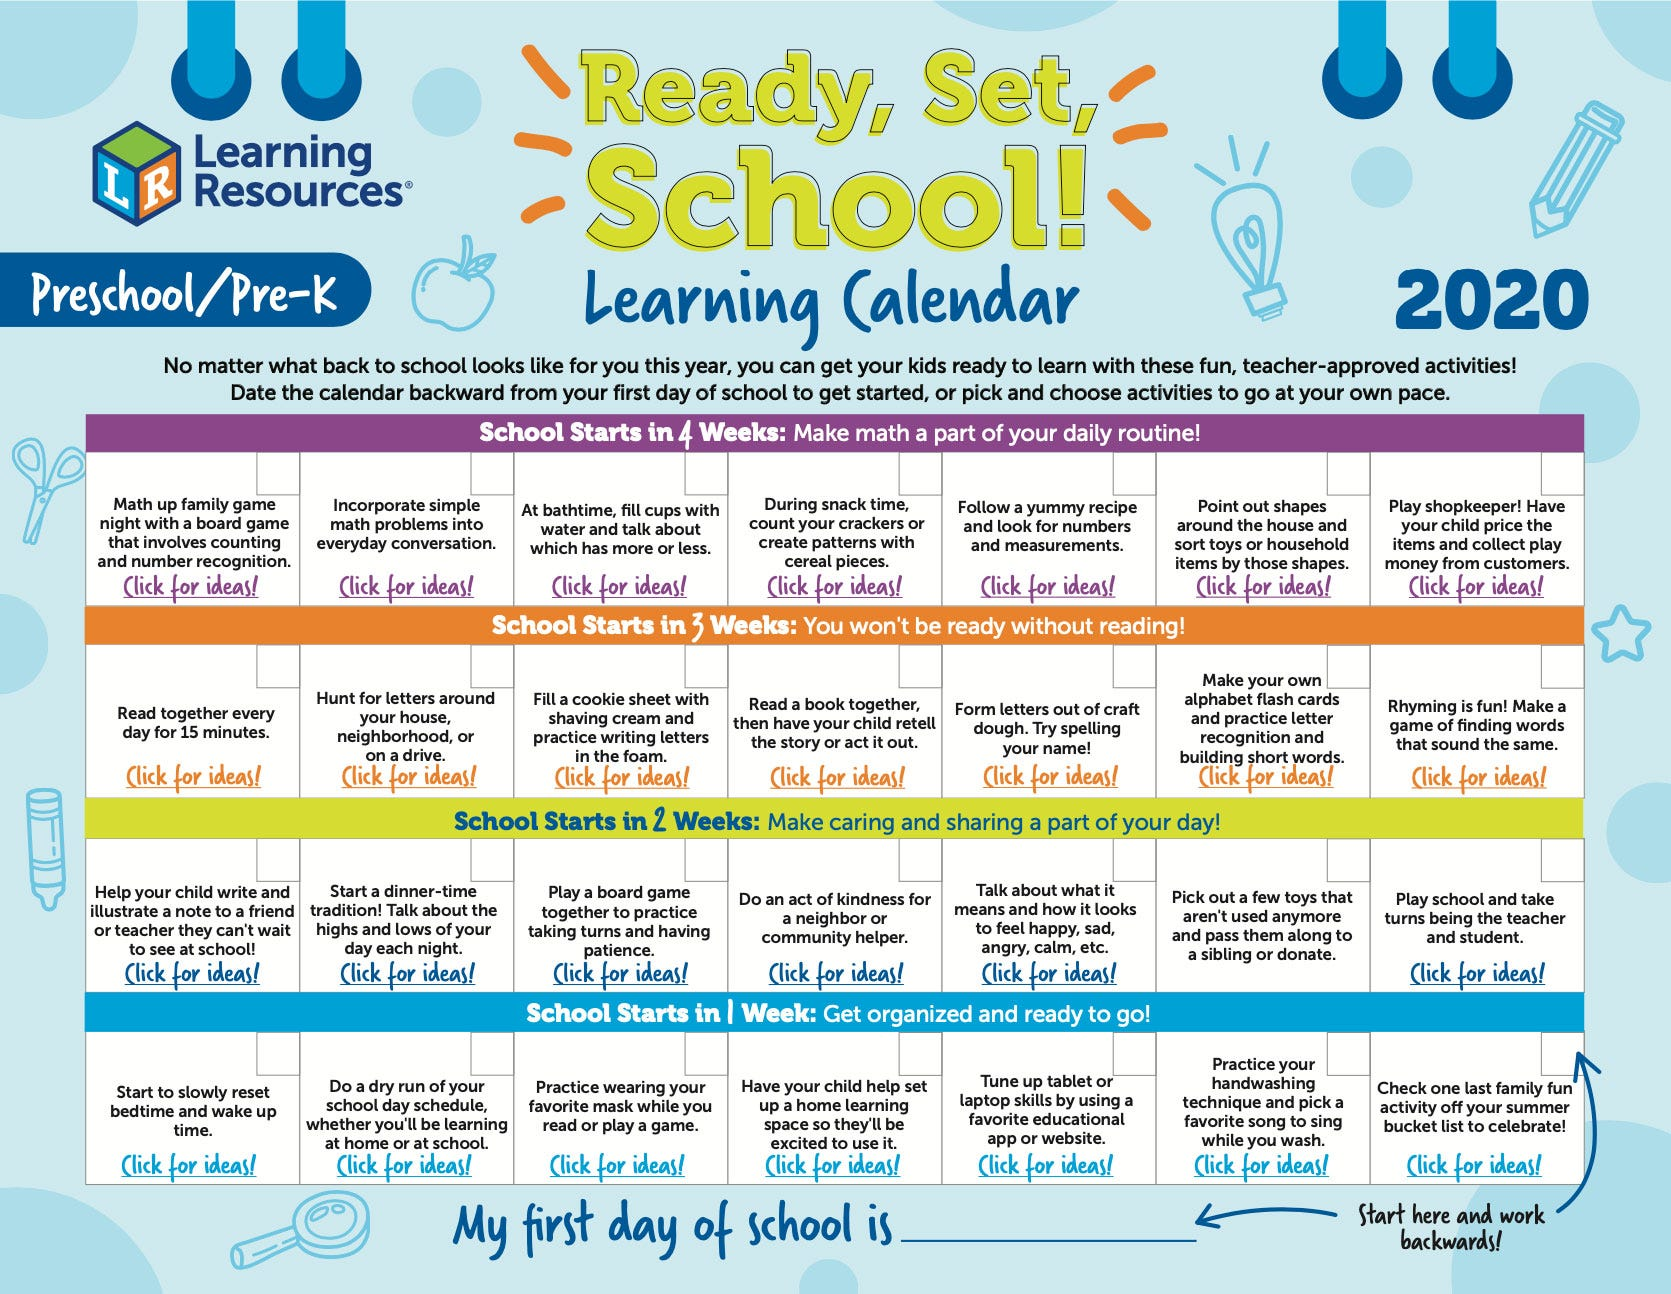 Ready, Set, School Preschool/Pre-k Learning Calendar